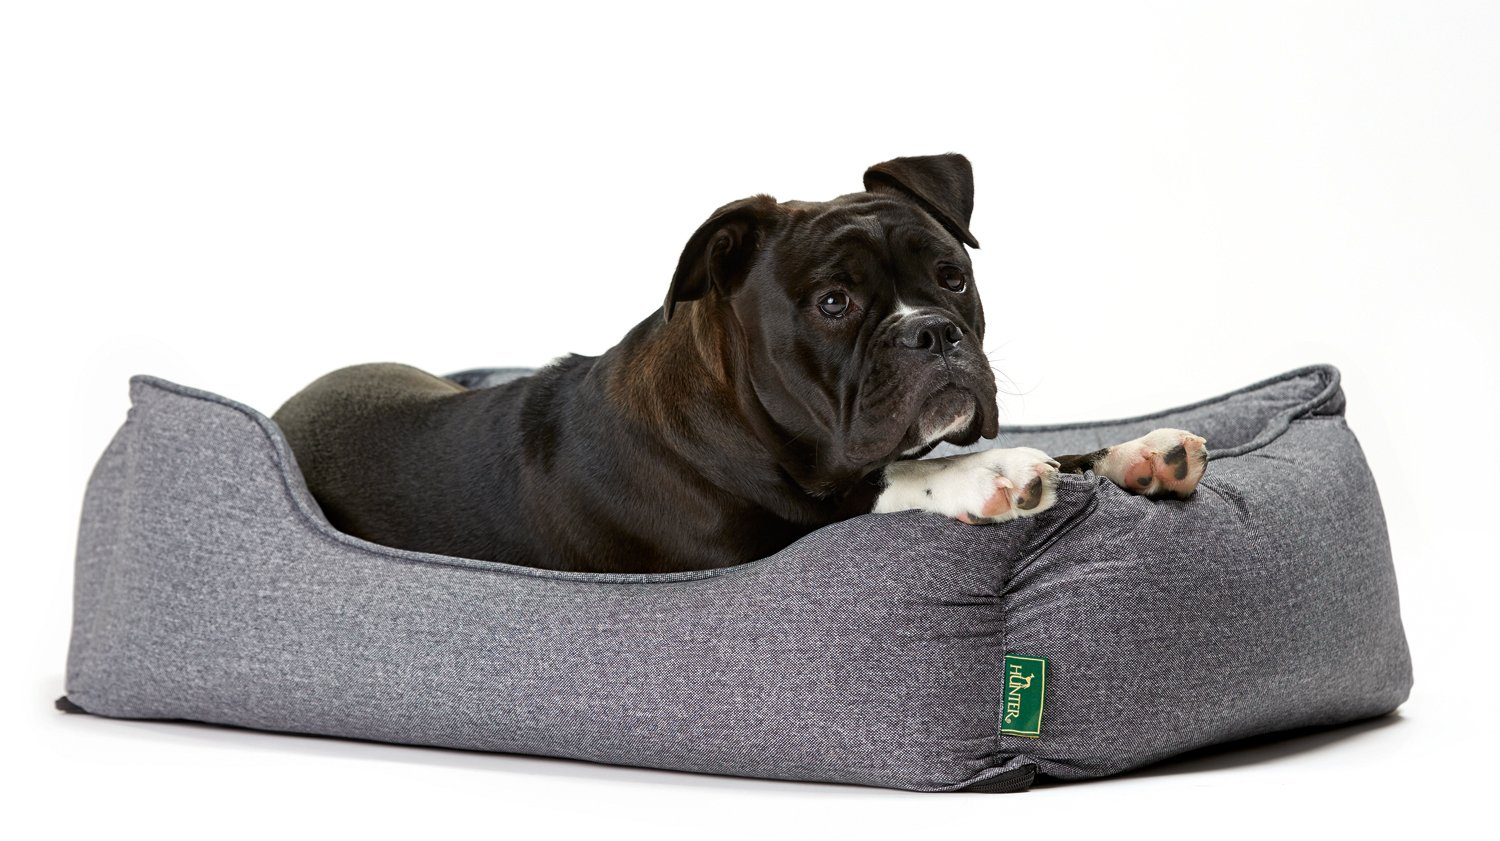 Hunter Boston 61431 Dog's Sofa Large Outer Dimensions 100 X 72 X 27 Cm /  Inner Cushion 85 X 52 Cm Grey: Amazon.co.uk: Pet Supplies